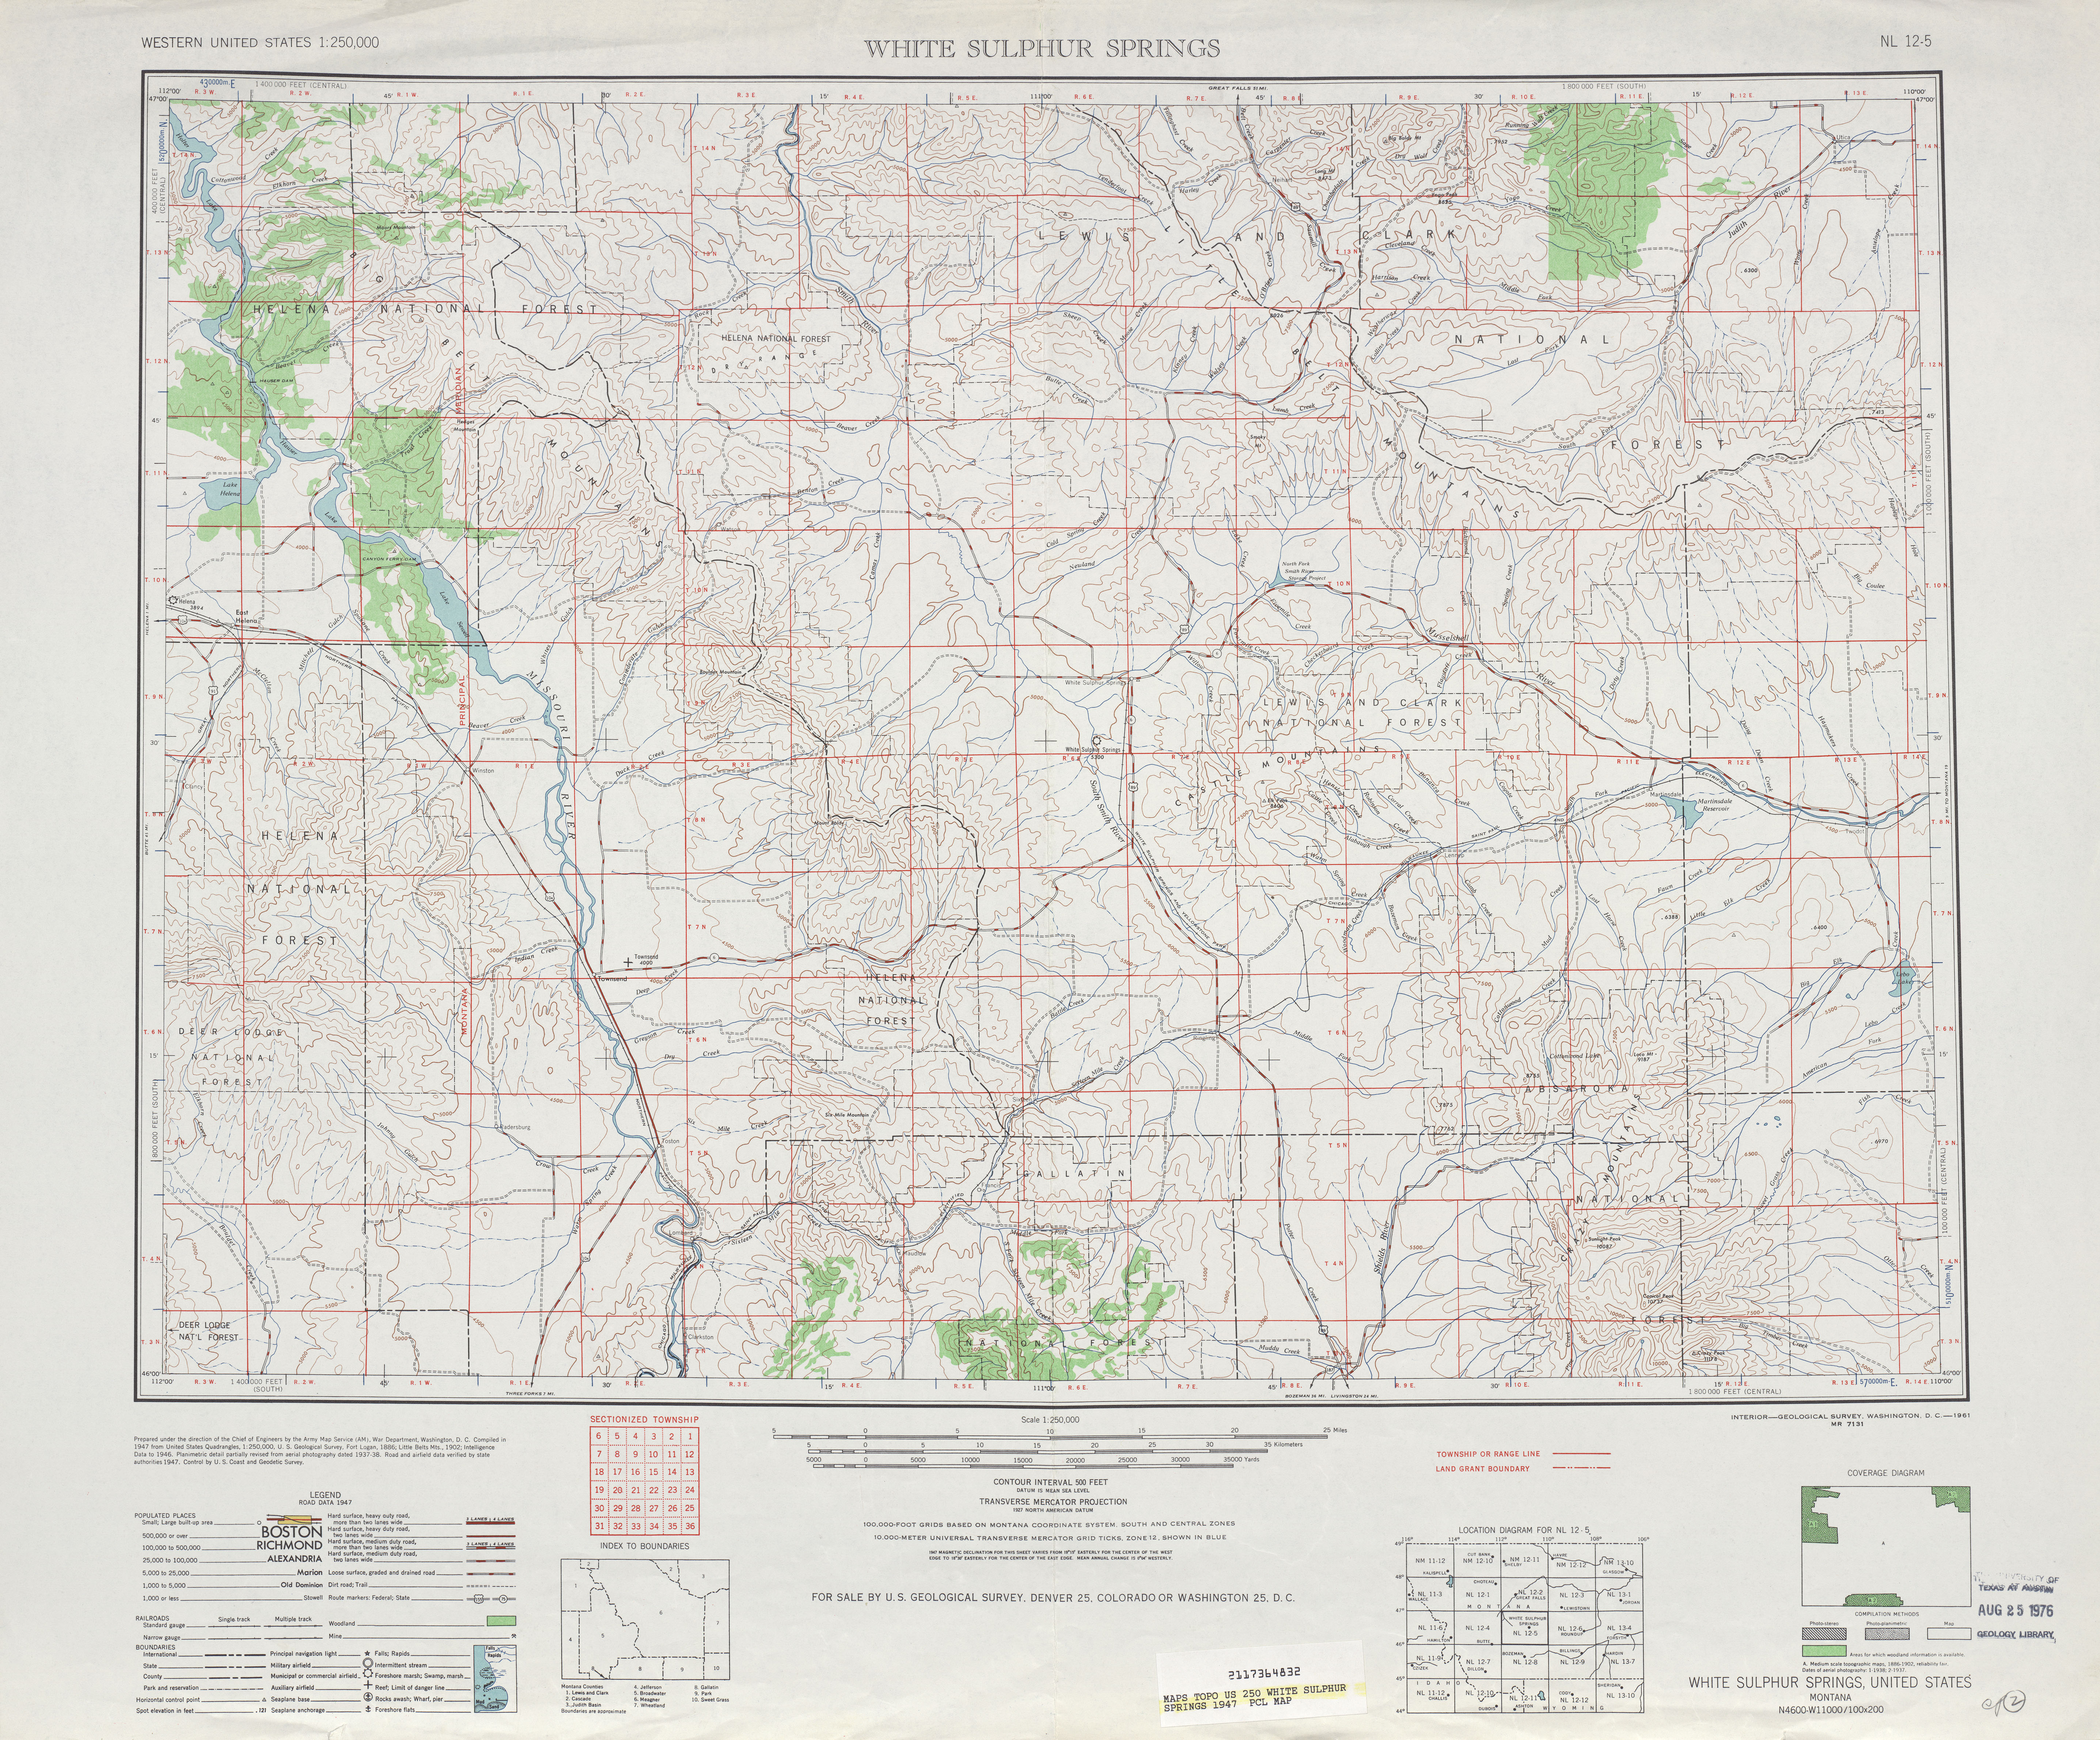 White Sulphur Springs Topographic Map Sheet, United States 1947